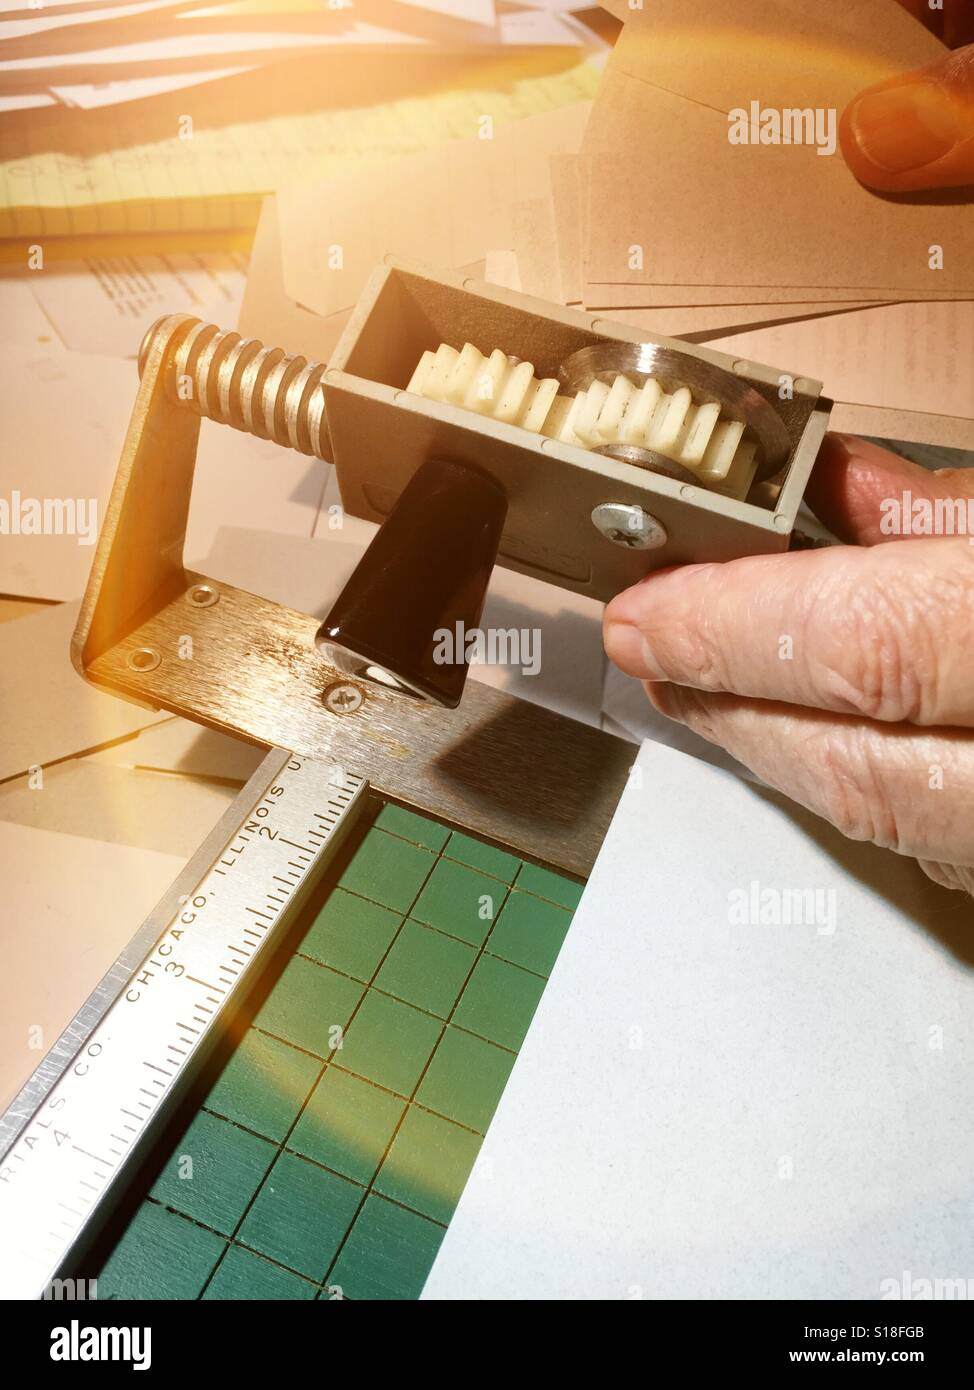 Vintage paper trimmer - Stock Image